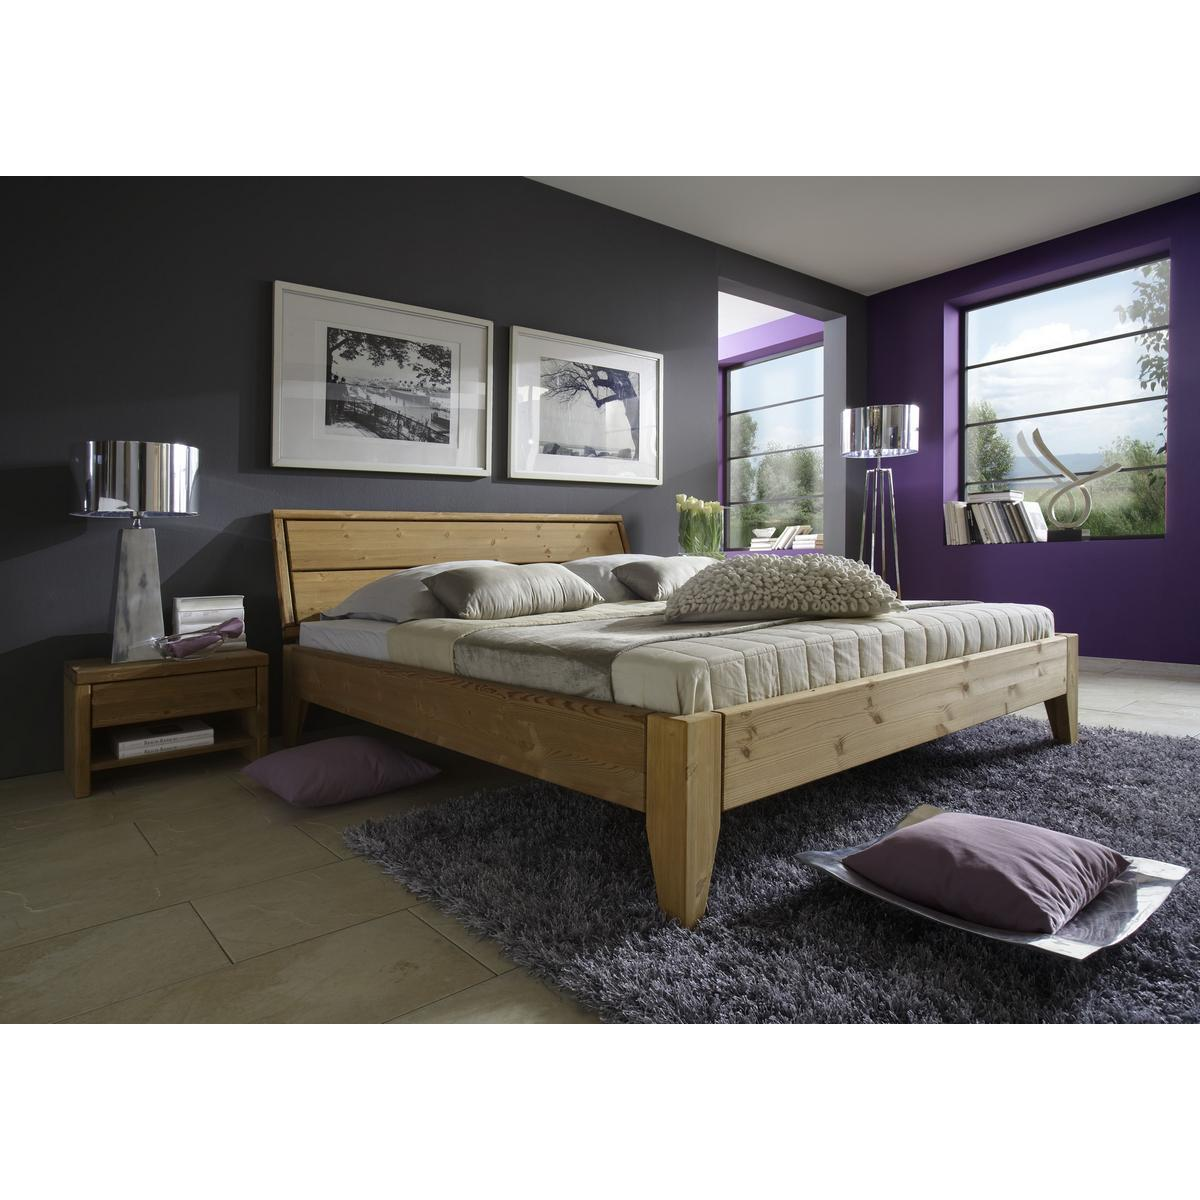 massivholz bett 180x200 xl easy sleep kiefer massiv. Black Bedroom Furniture Sets. Home Design Ideas